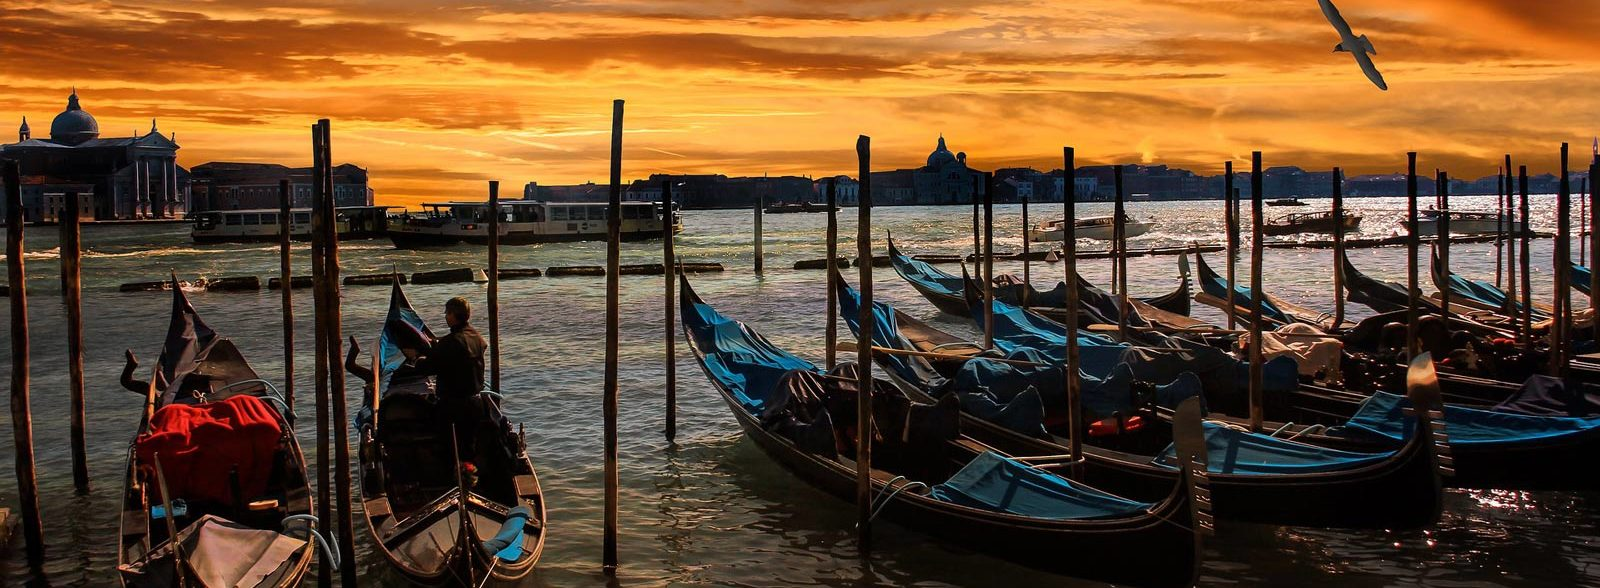 Where to watch the best sunrise in Venice